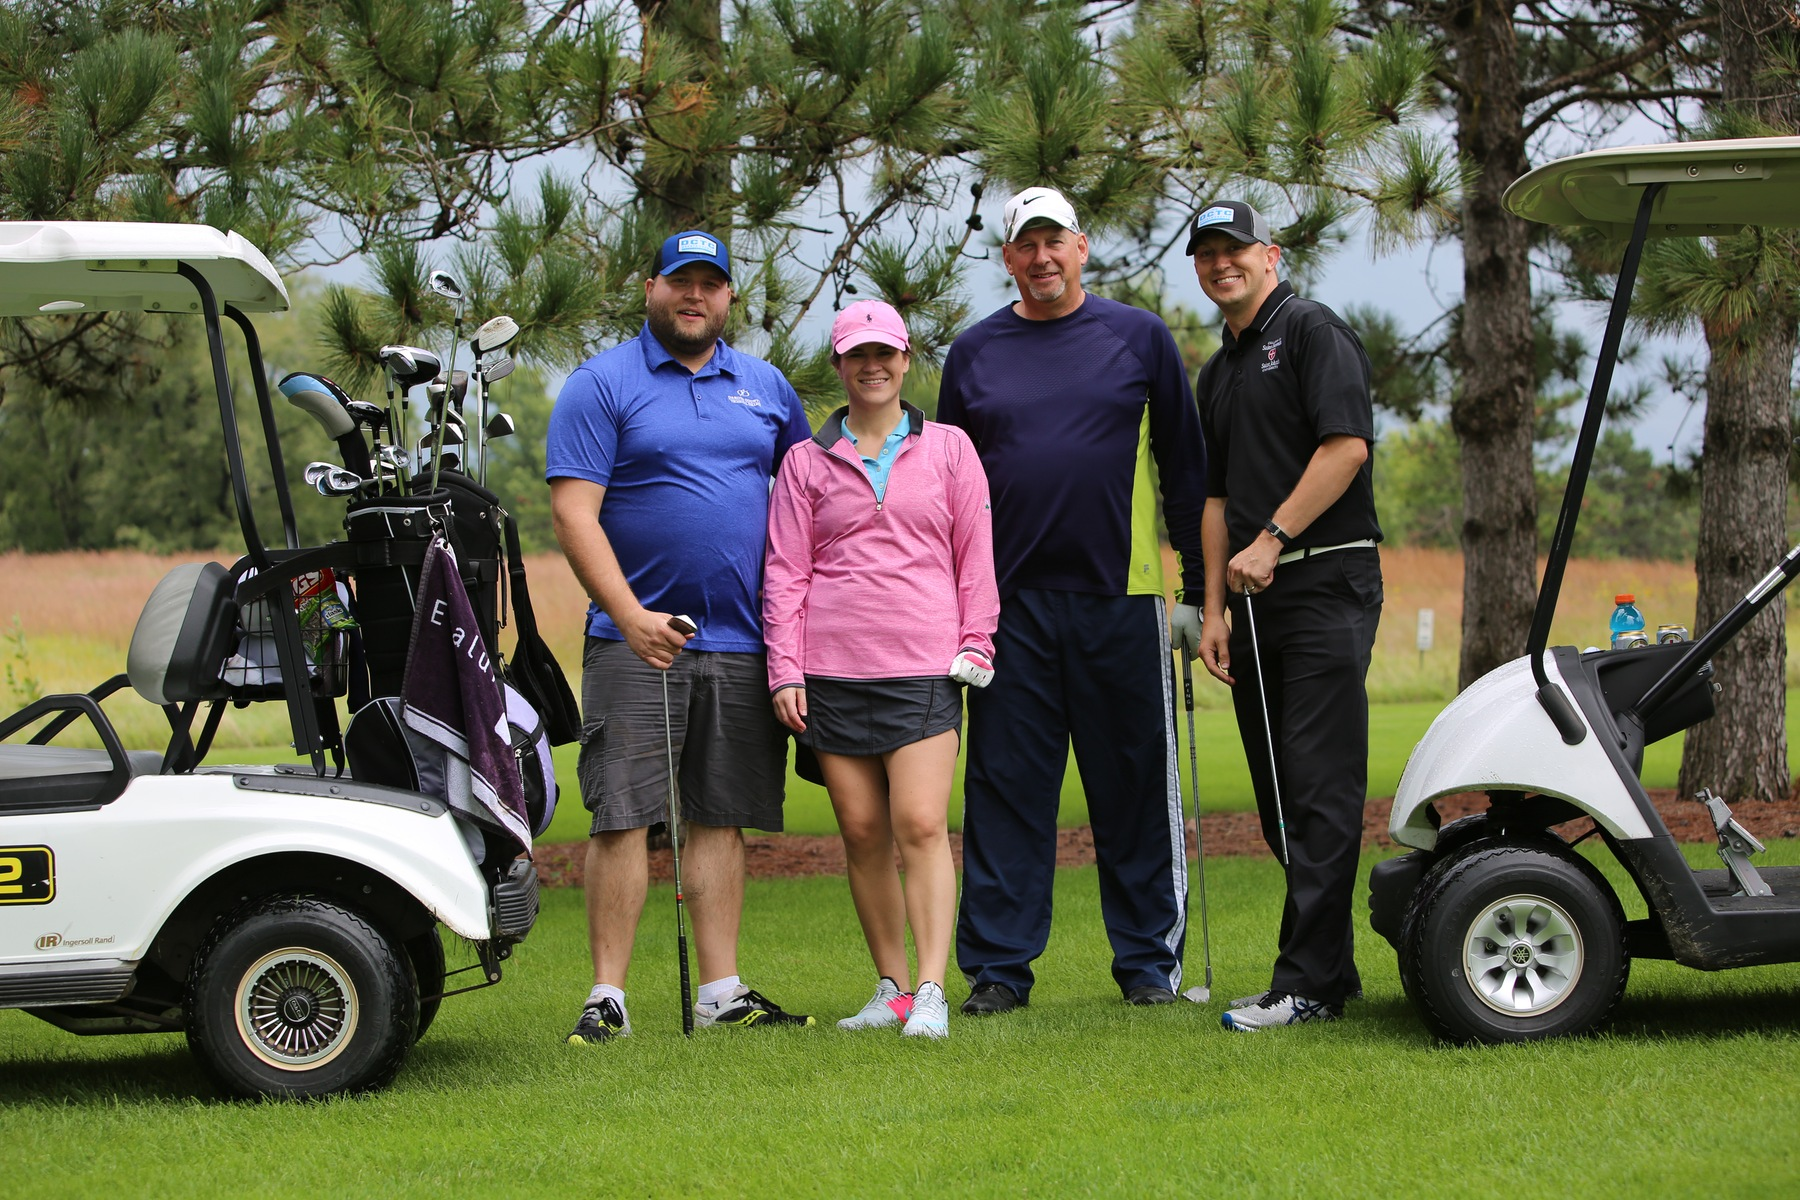 DCTC Hosts it's 4th Annual Golf Fundraiser on August 18th